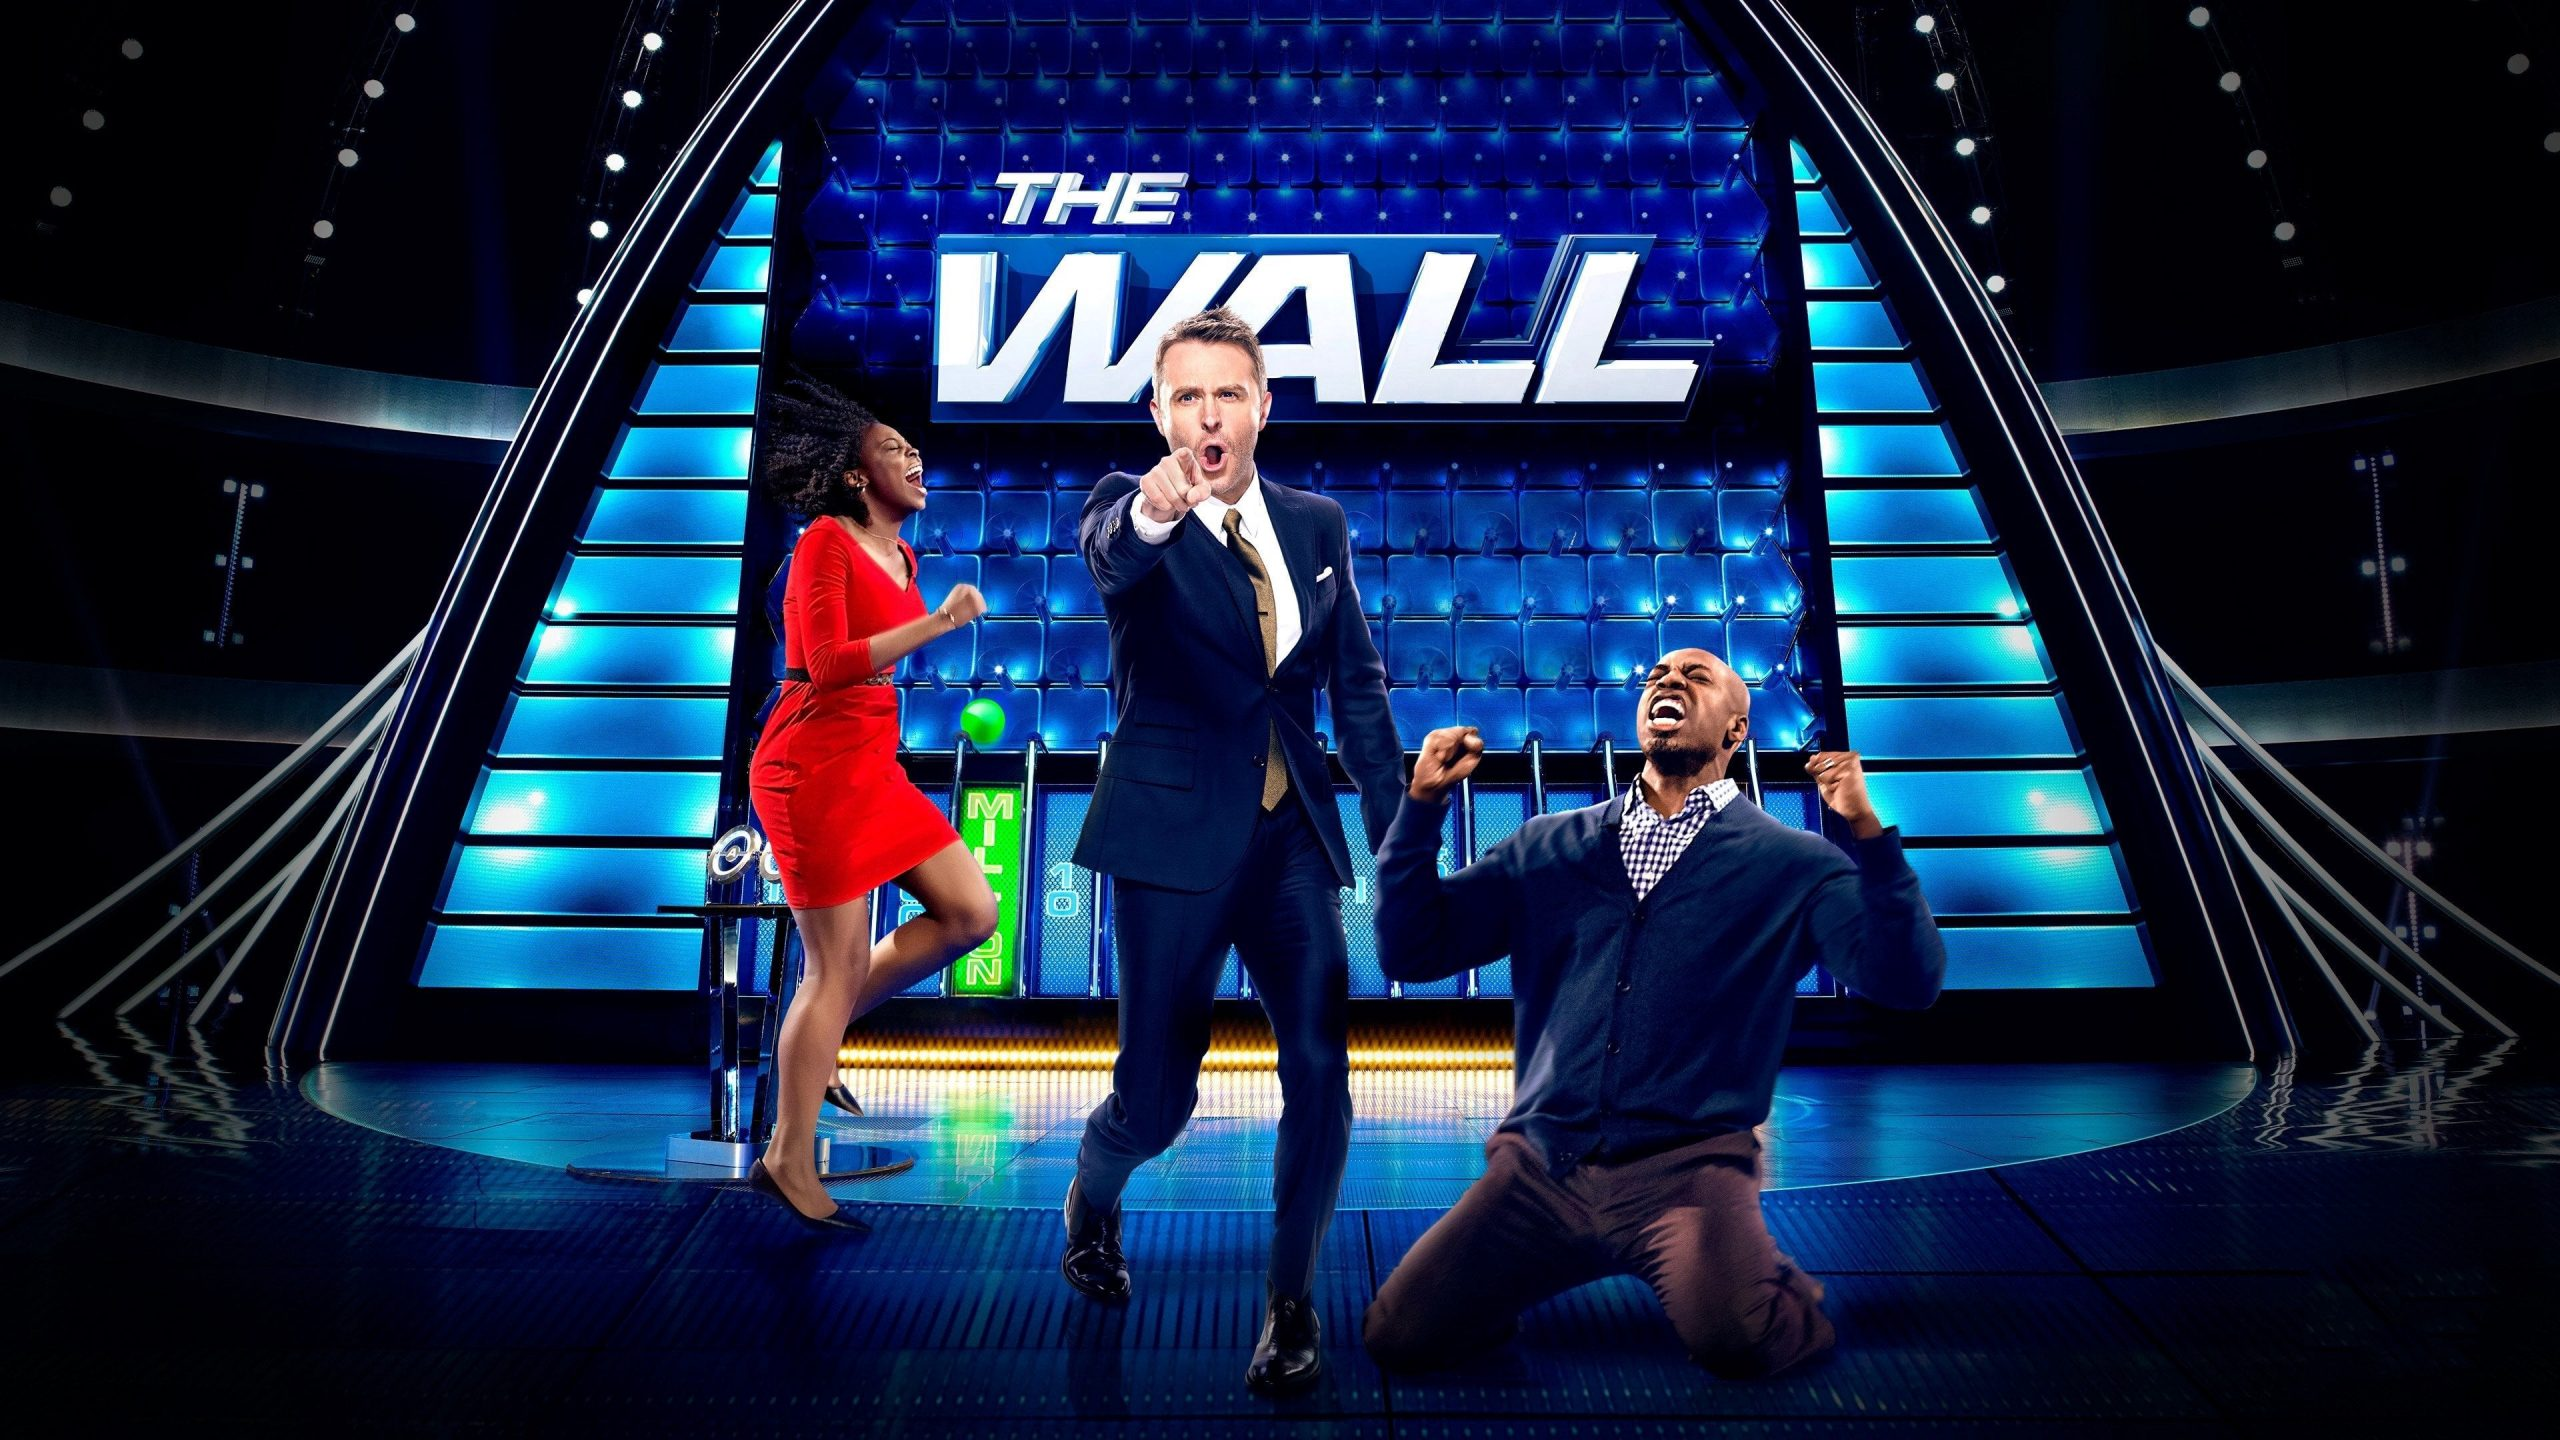 Preview And Release Date: The Wall Season 4 Episode 6